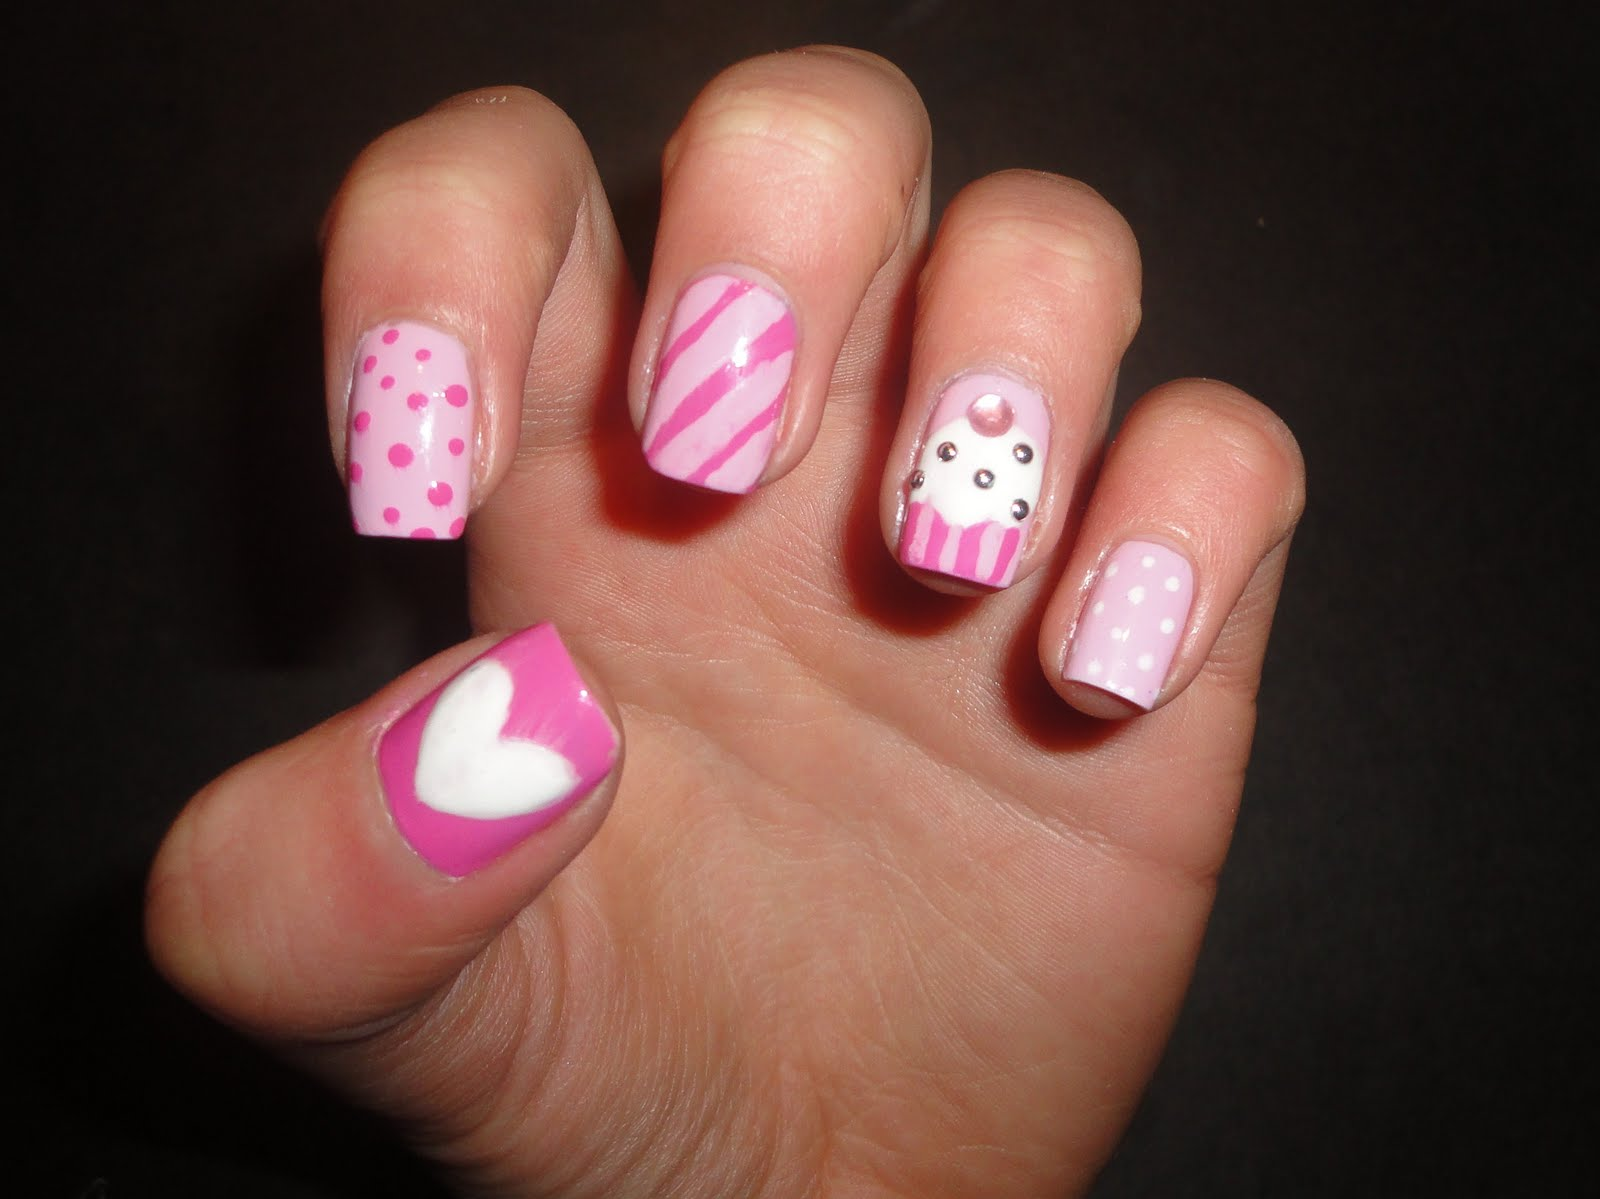 Pics Of Nails Designs | Nail Designs, Hair Styles, Tattoos and ...